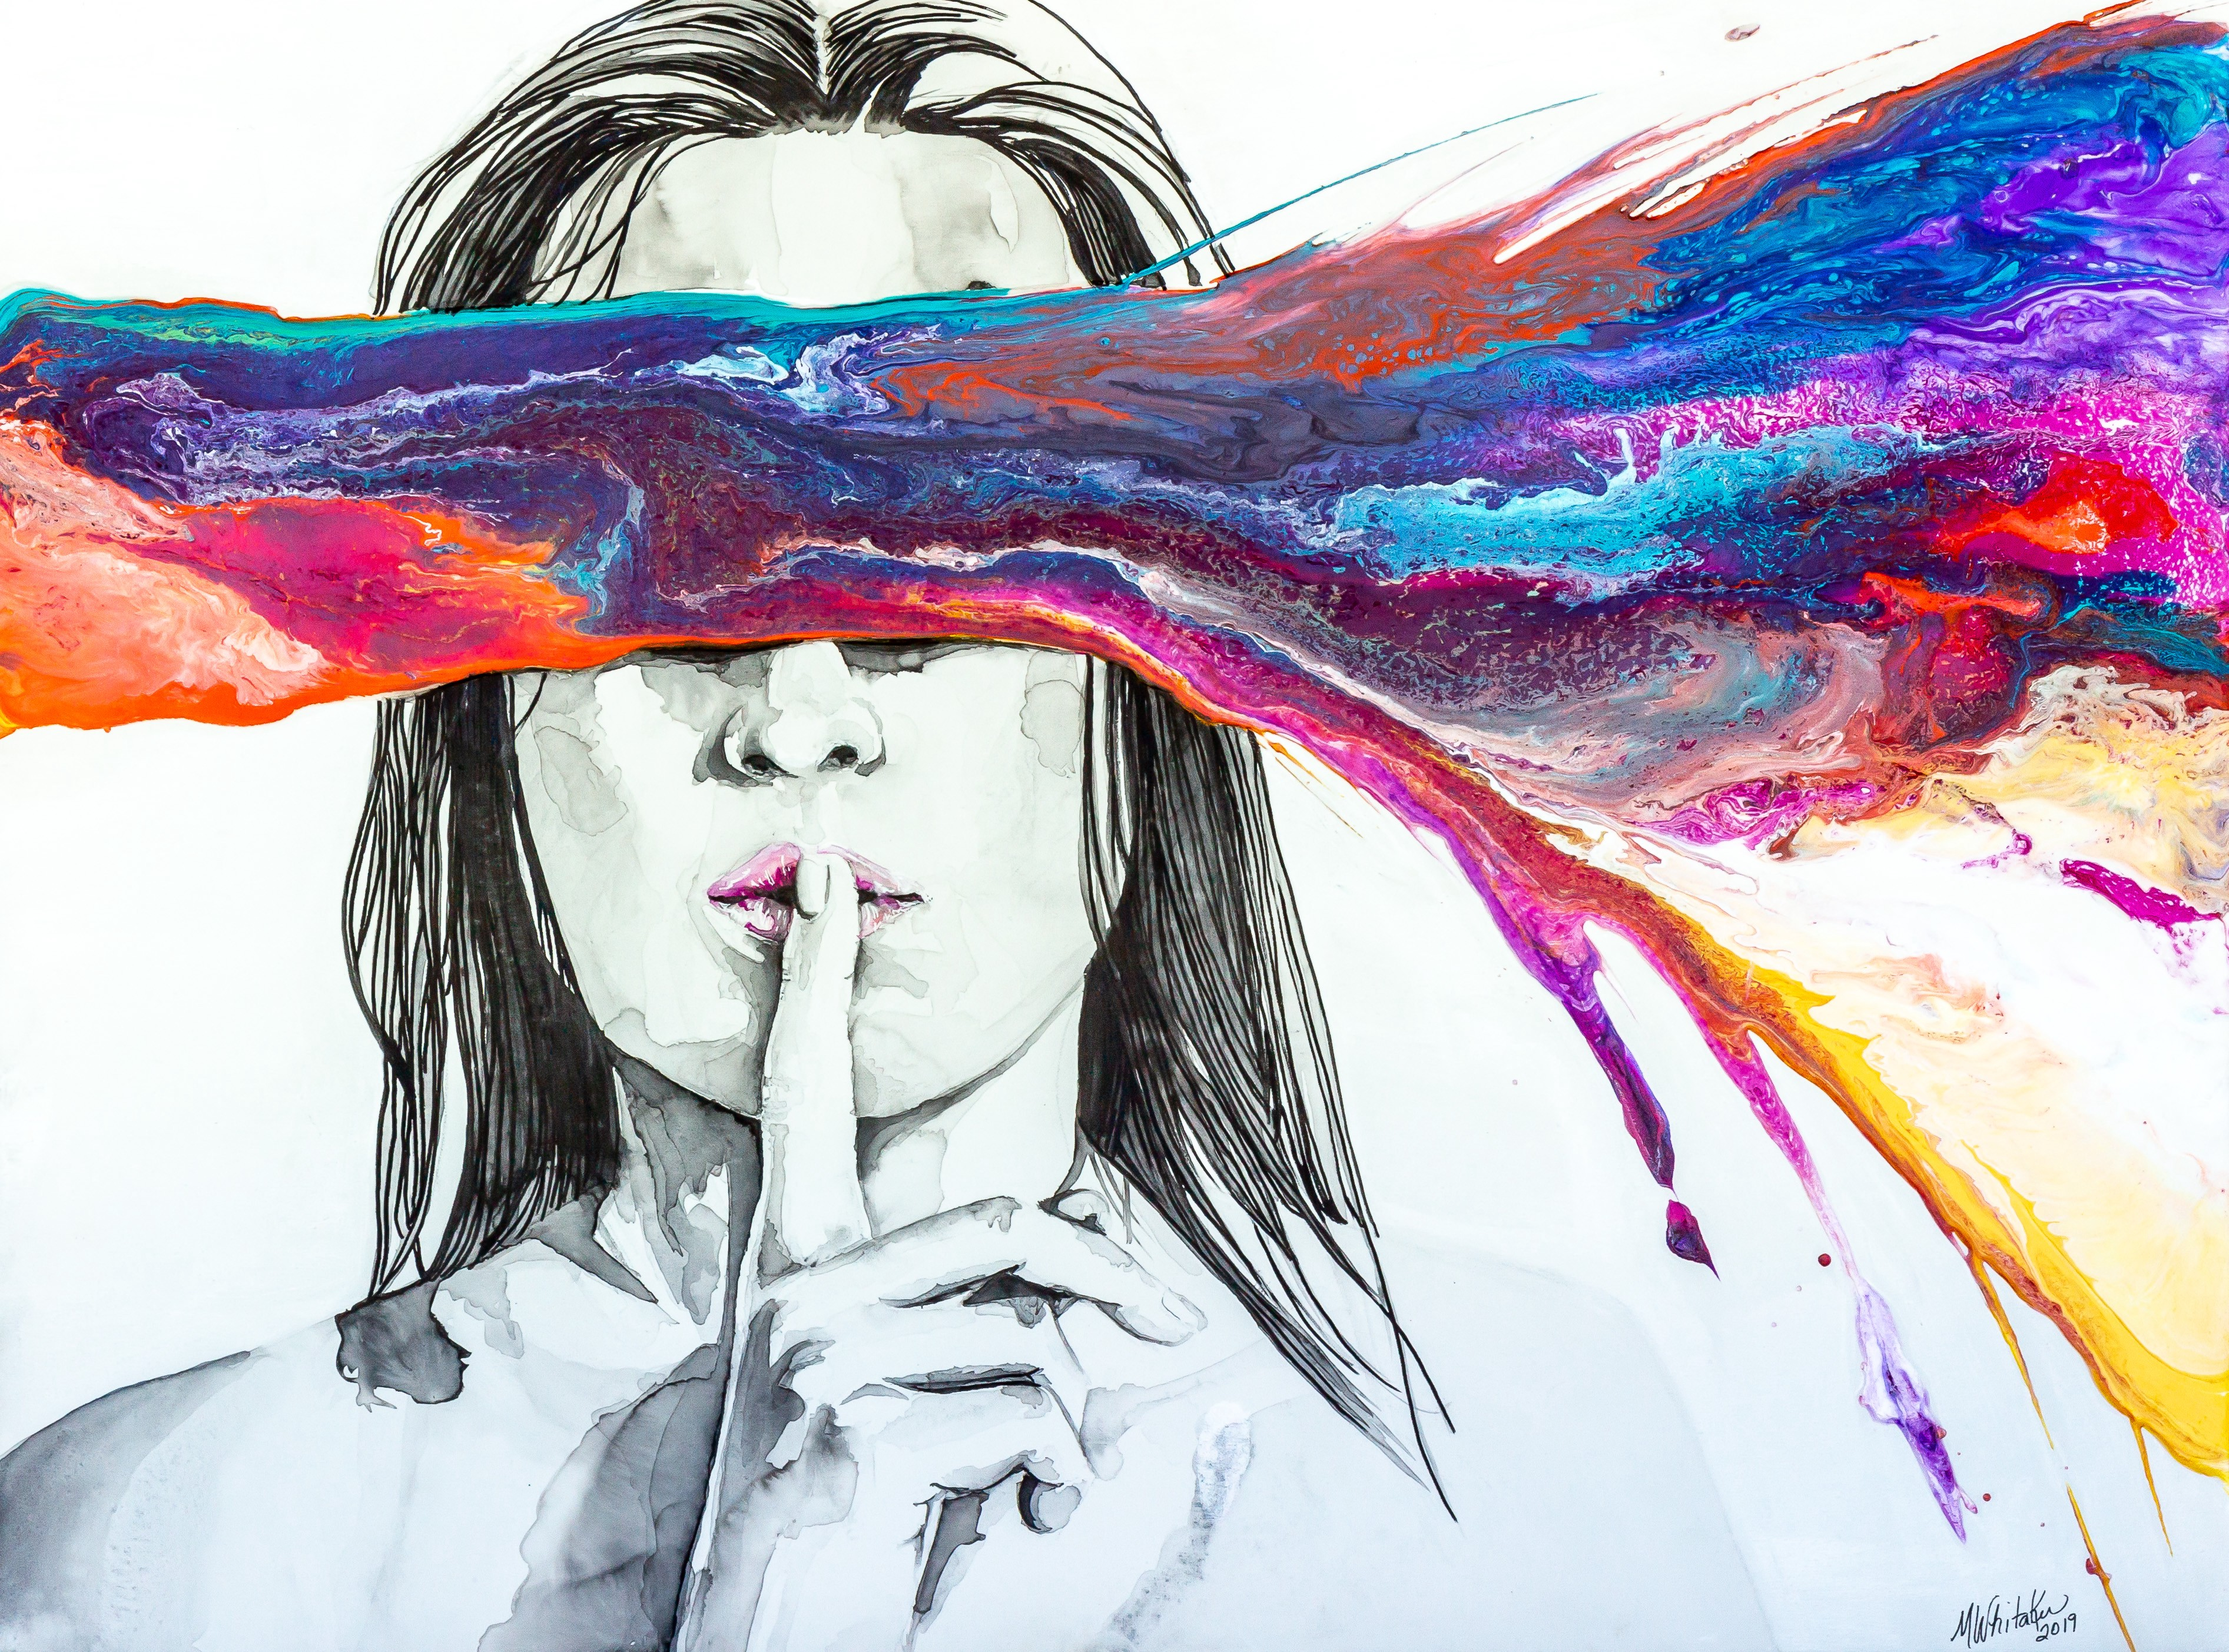 Black and white illustration of a woman holding index finger to her lips & a splash of multiple colors streaks over her eyes